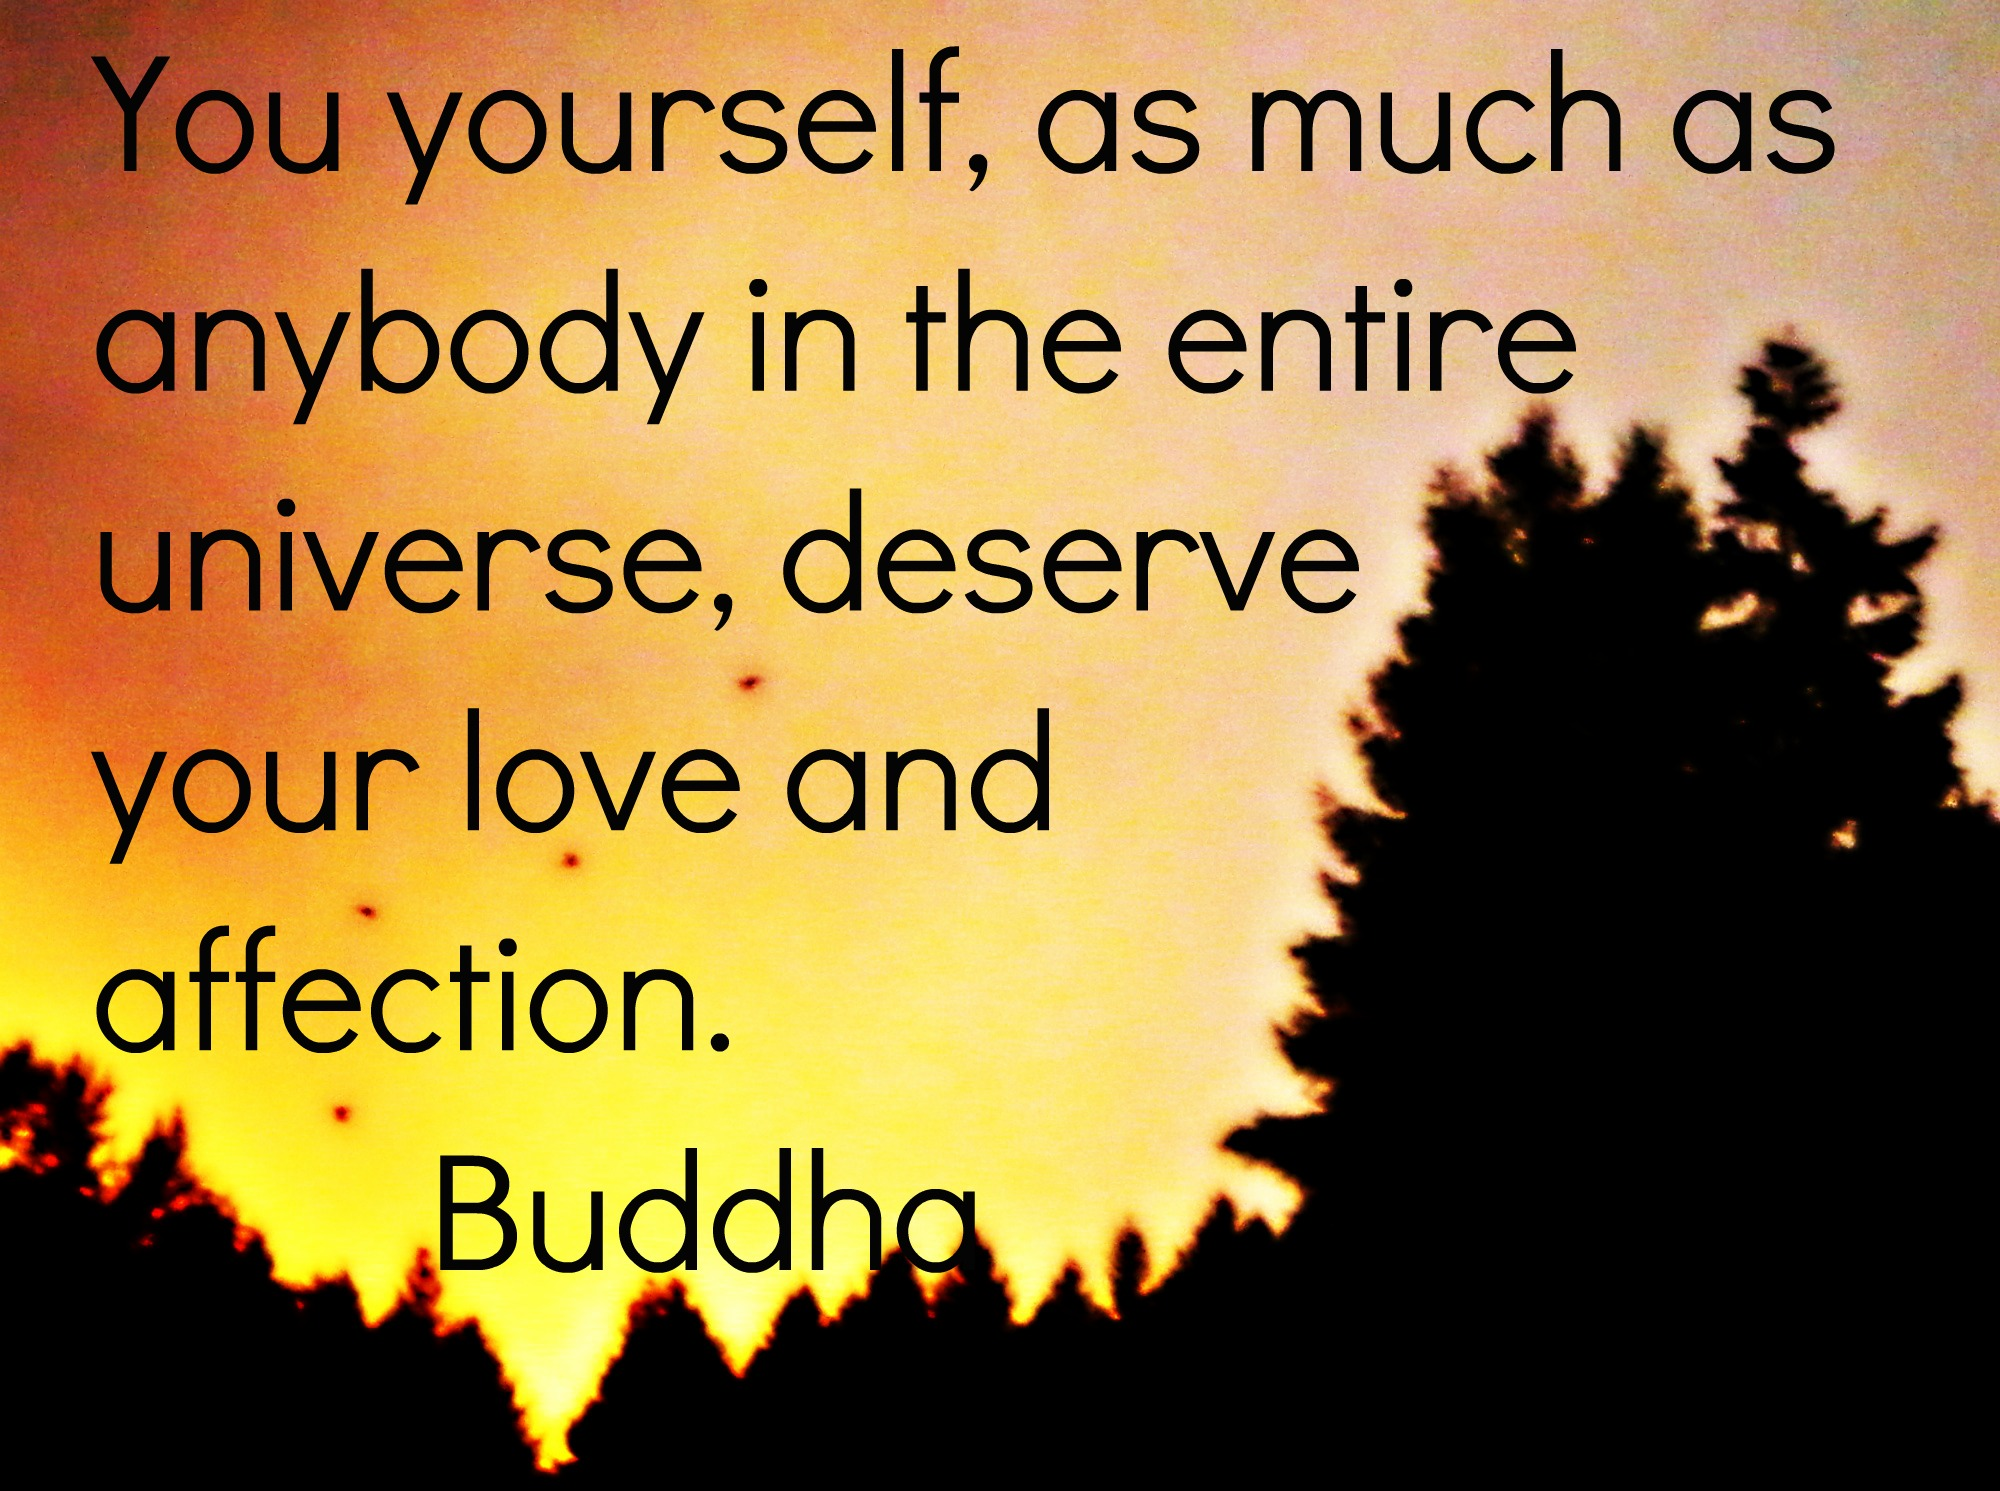 Buddhist Quotes On Love Buddha Quotes On Love And Happiness Buddha Quotes.